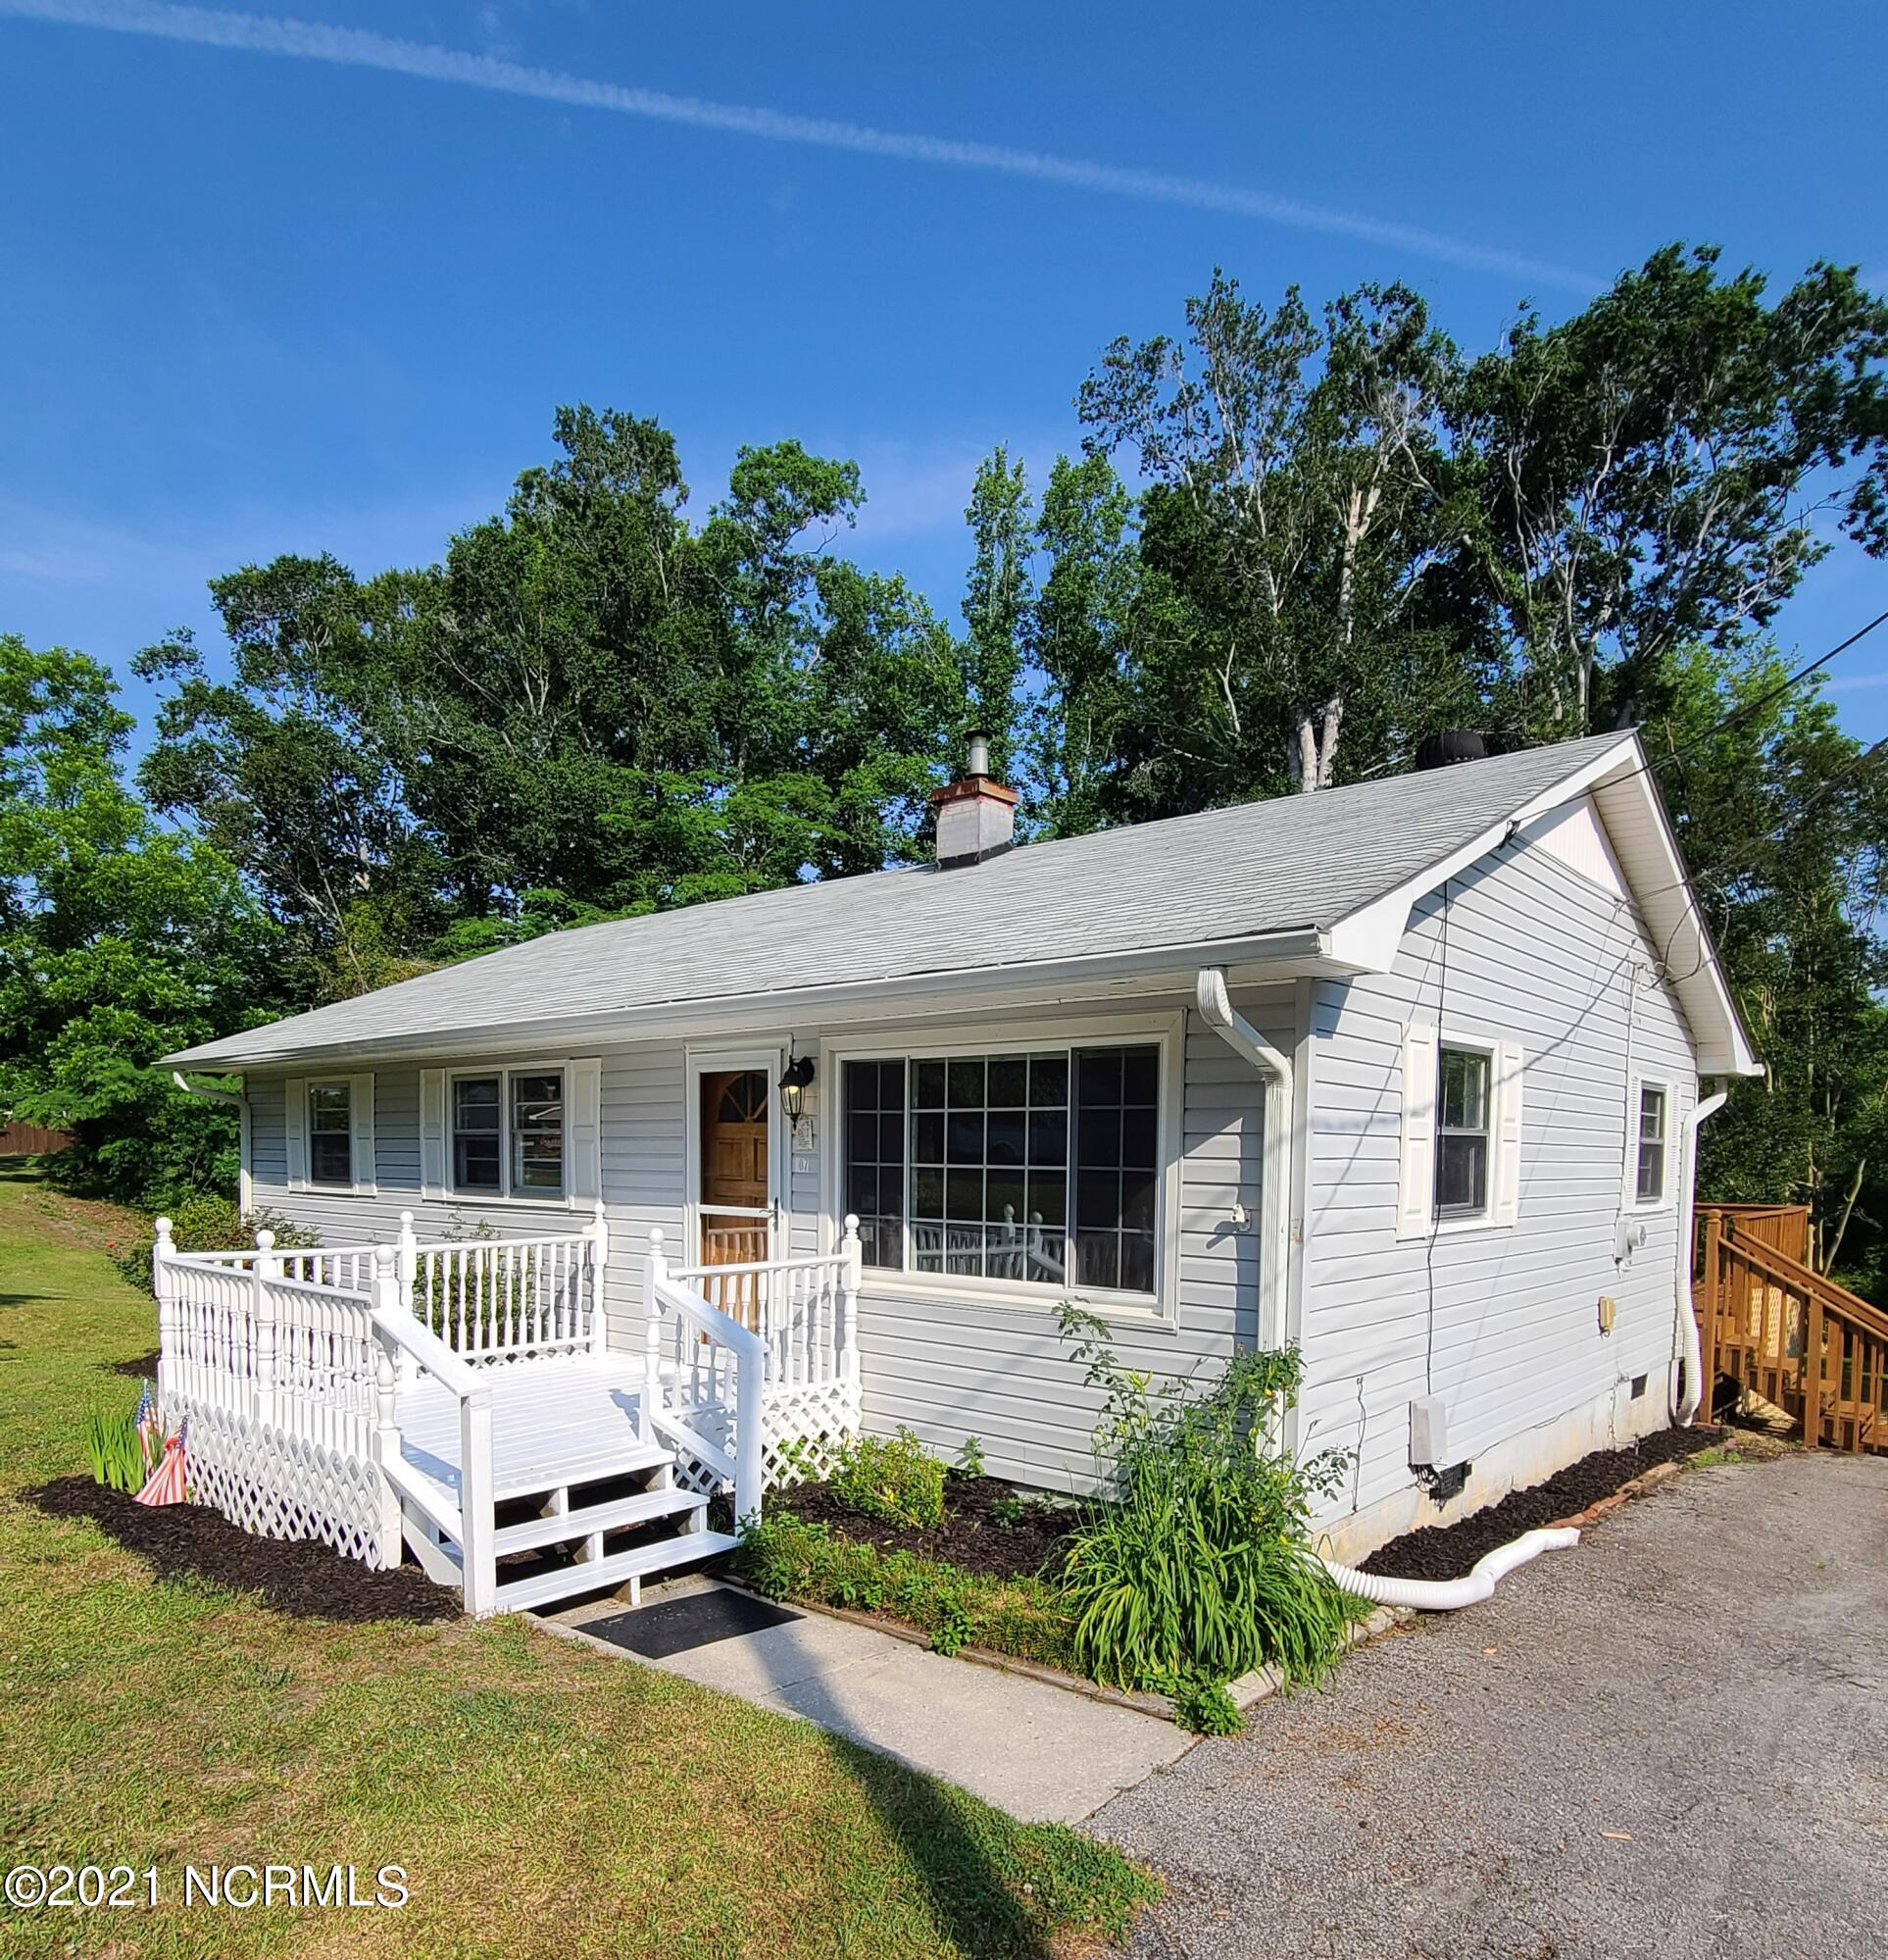 Adorable and spacious 4 bedroom 2 bath home situated on the end of the road in a cul de sac. Close to everything bases and beaches. Move in ready home, make your appointment today!